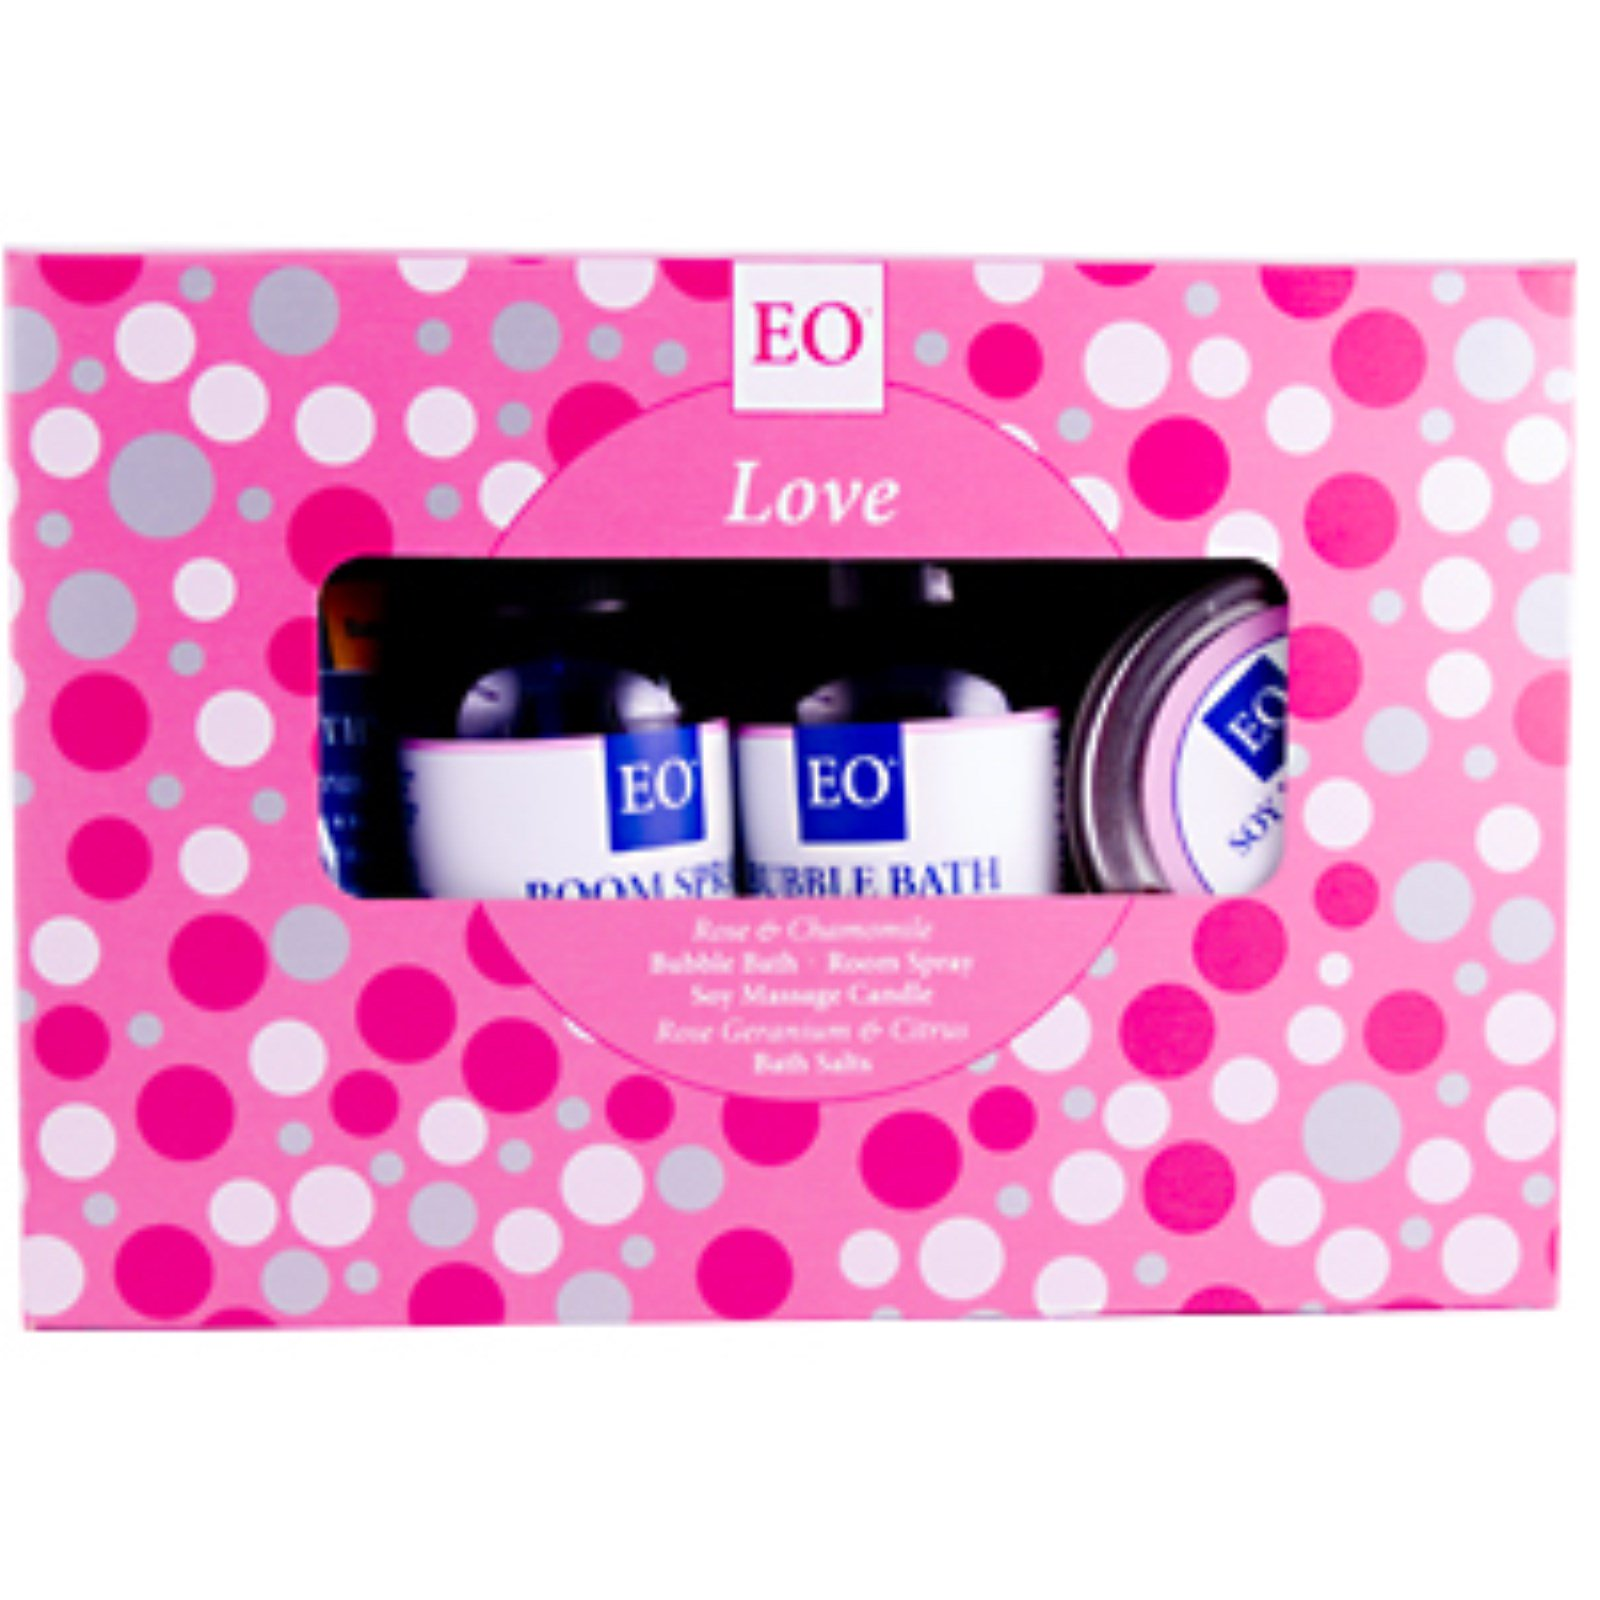 Eo products love gift collection 4 piece kit iherb eo products love gift collection 4 piece kit discontinued item negle Gallery